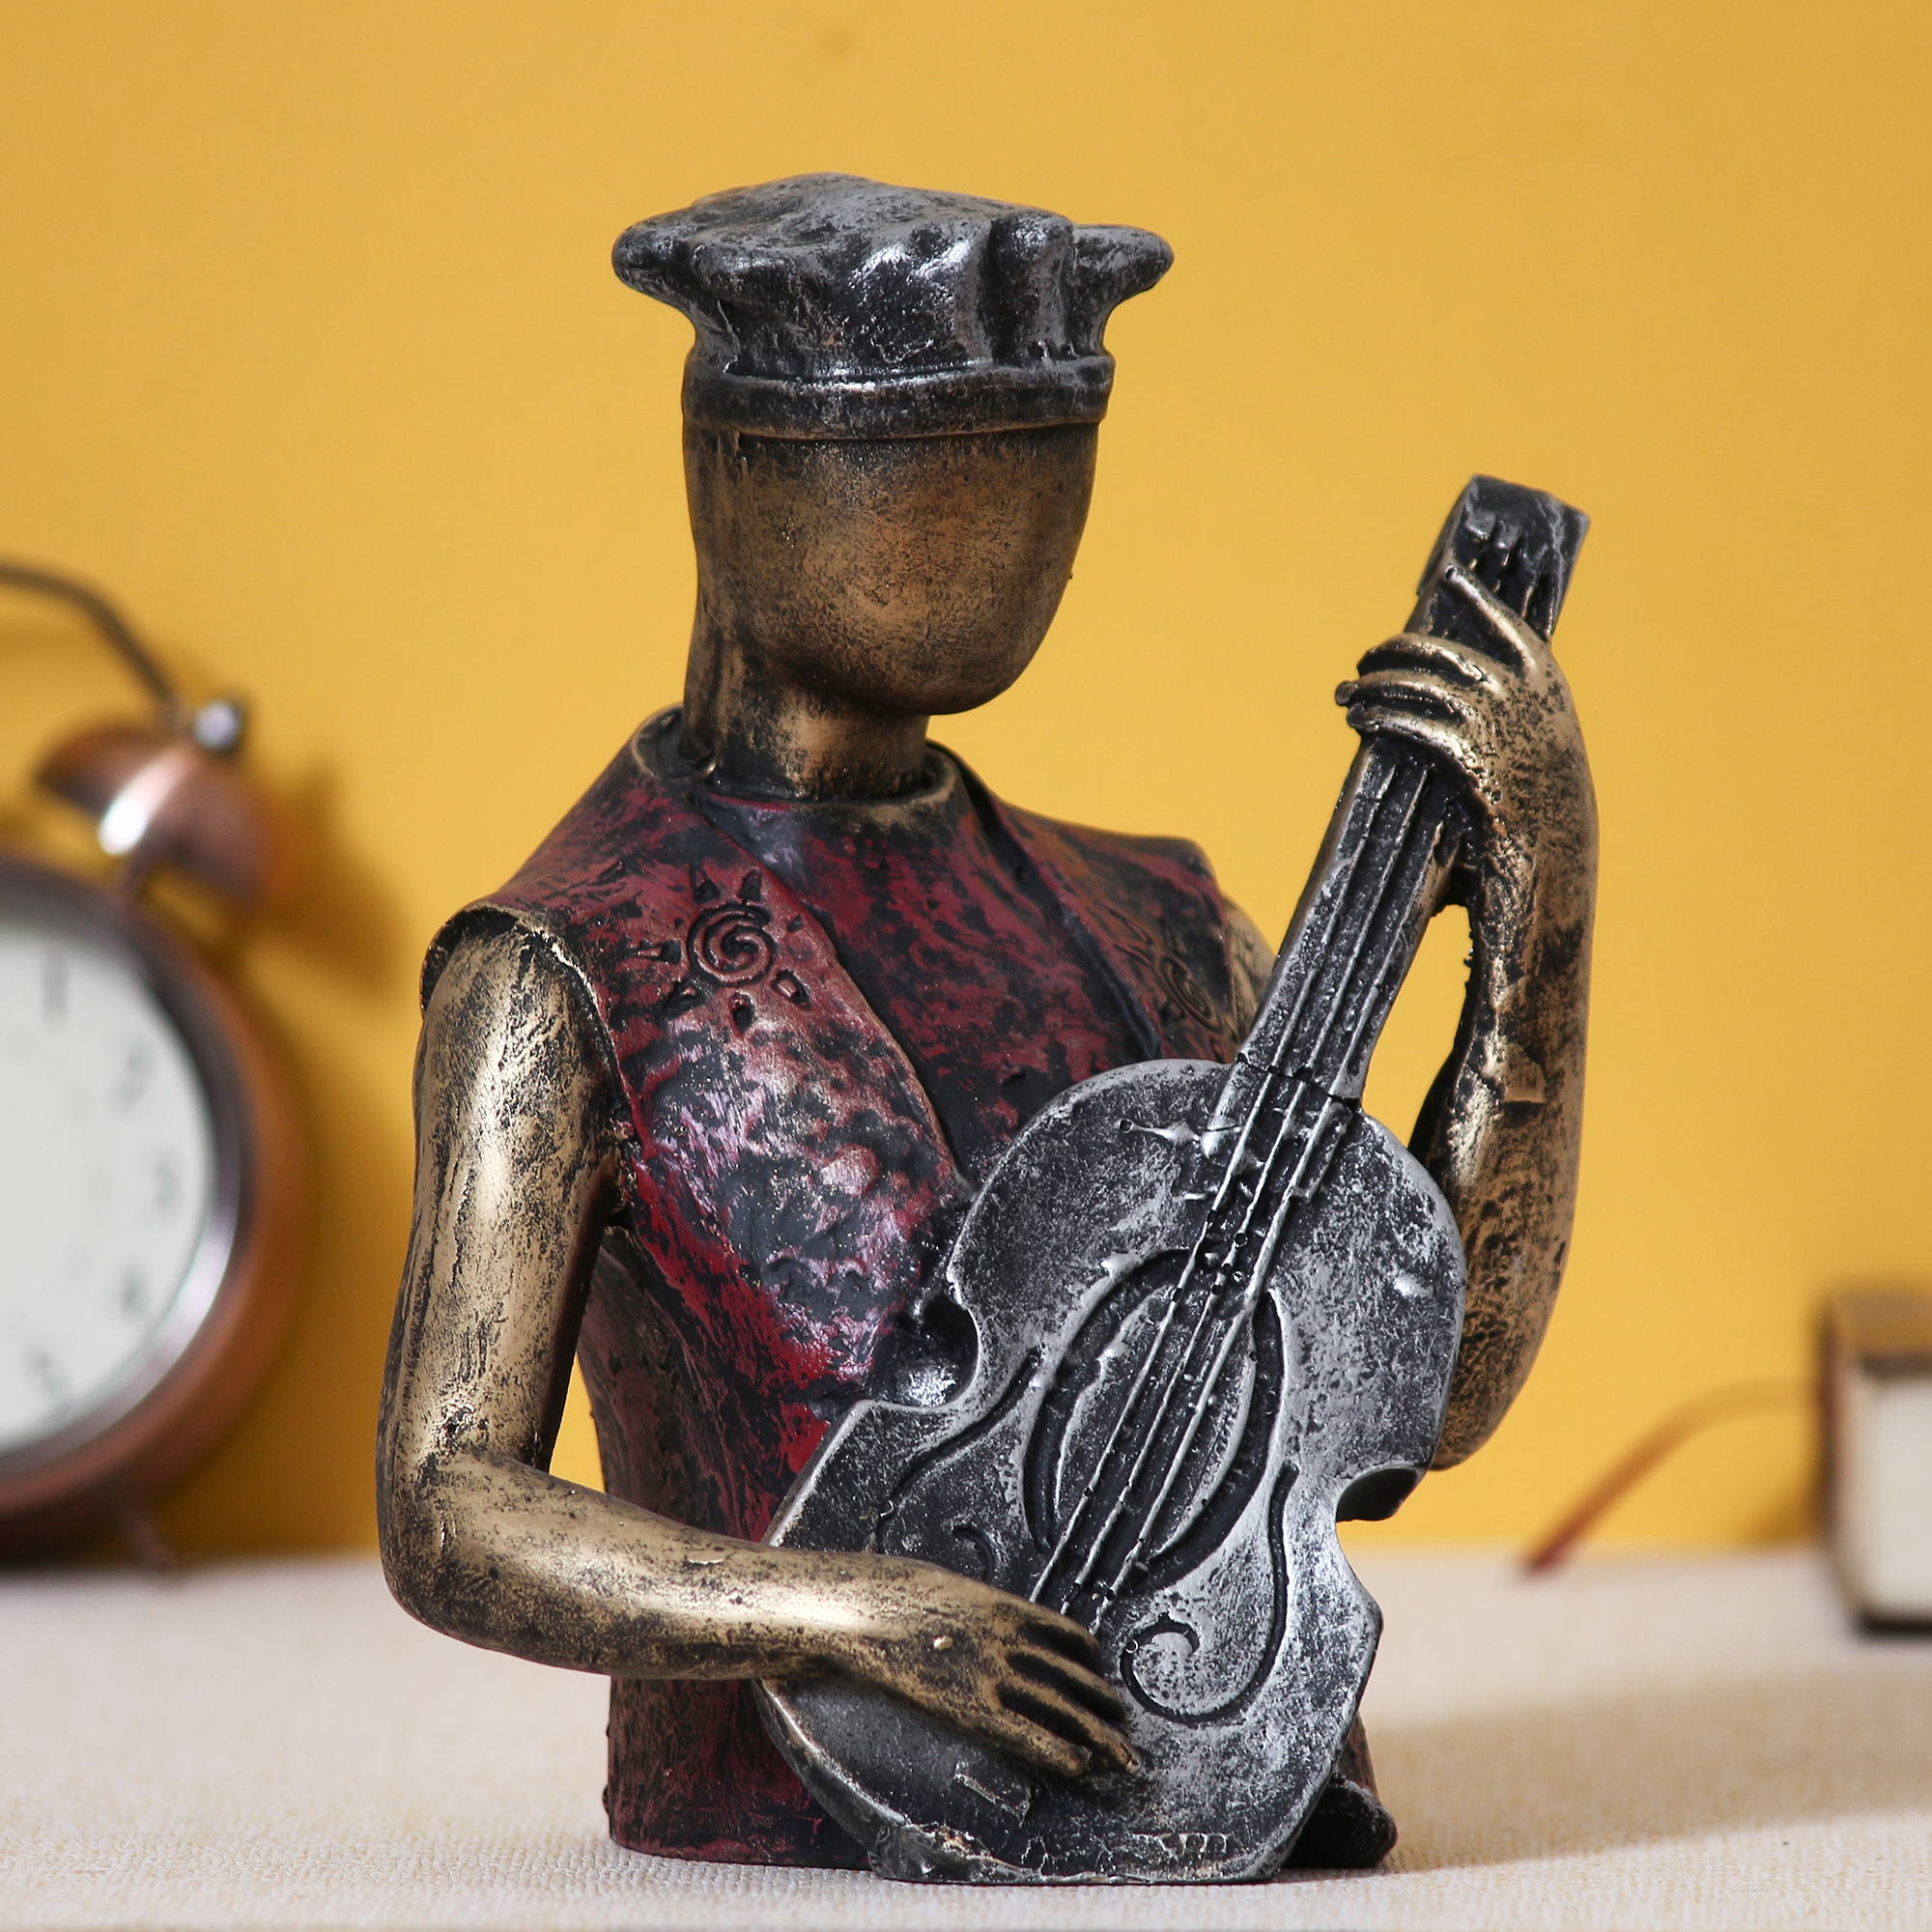 Man with Hat playing Guitar Decorative Statue Indian Home Decor